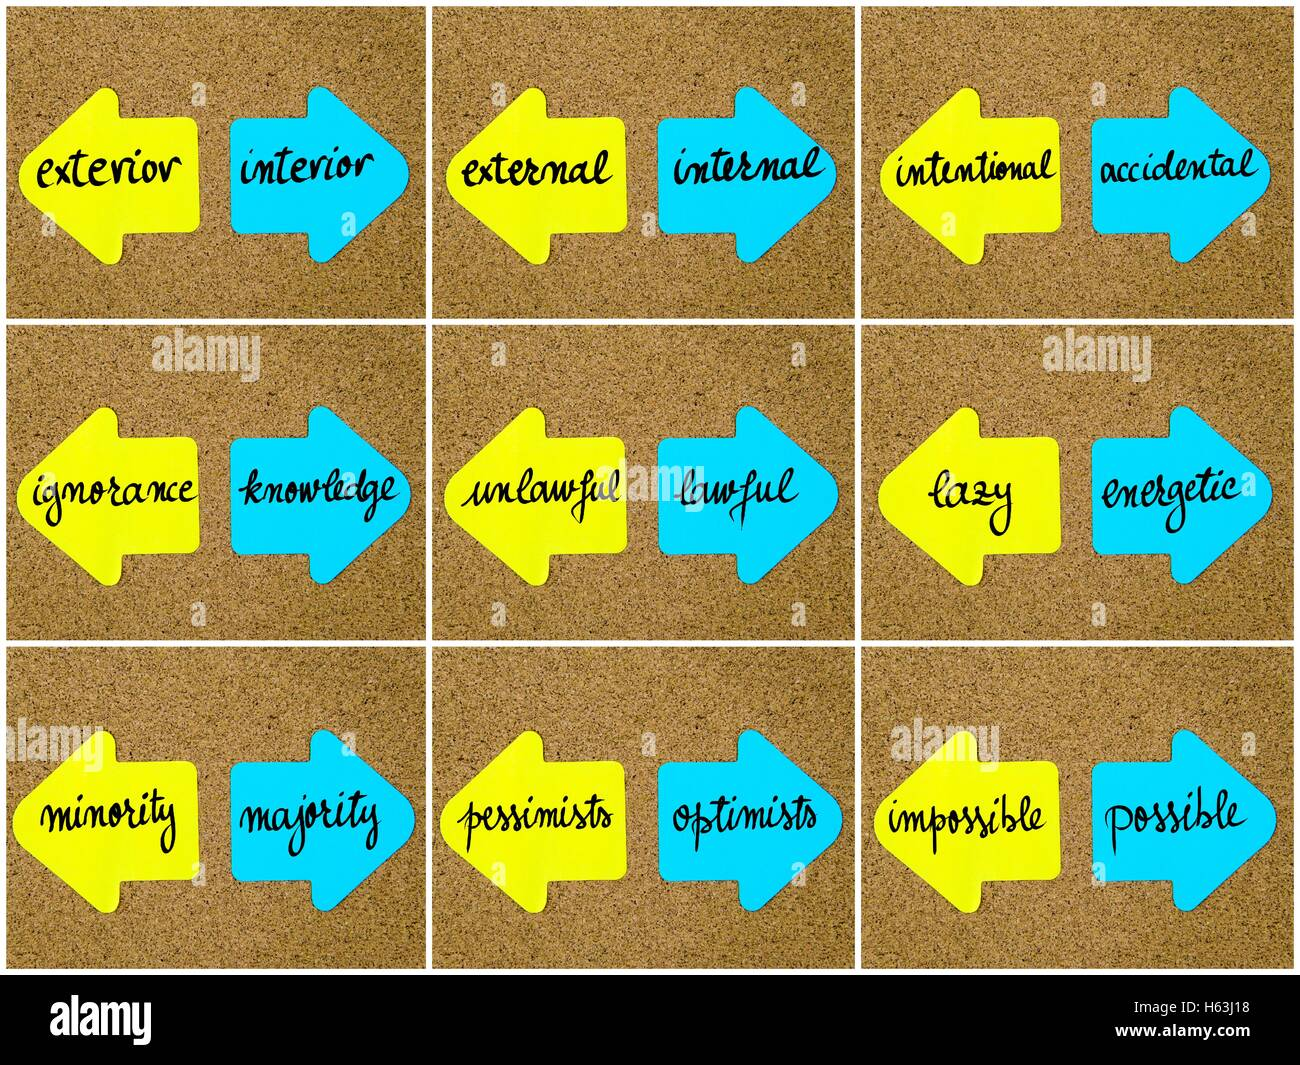 Photo collage of antonym concepts written on yellow and blue paper notes, opposite arrows pinned on cork board with - Stock Image